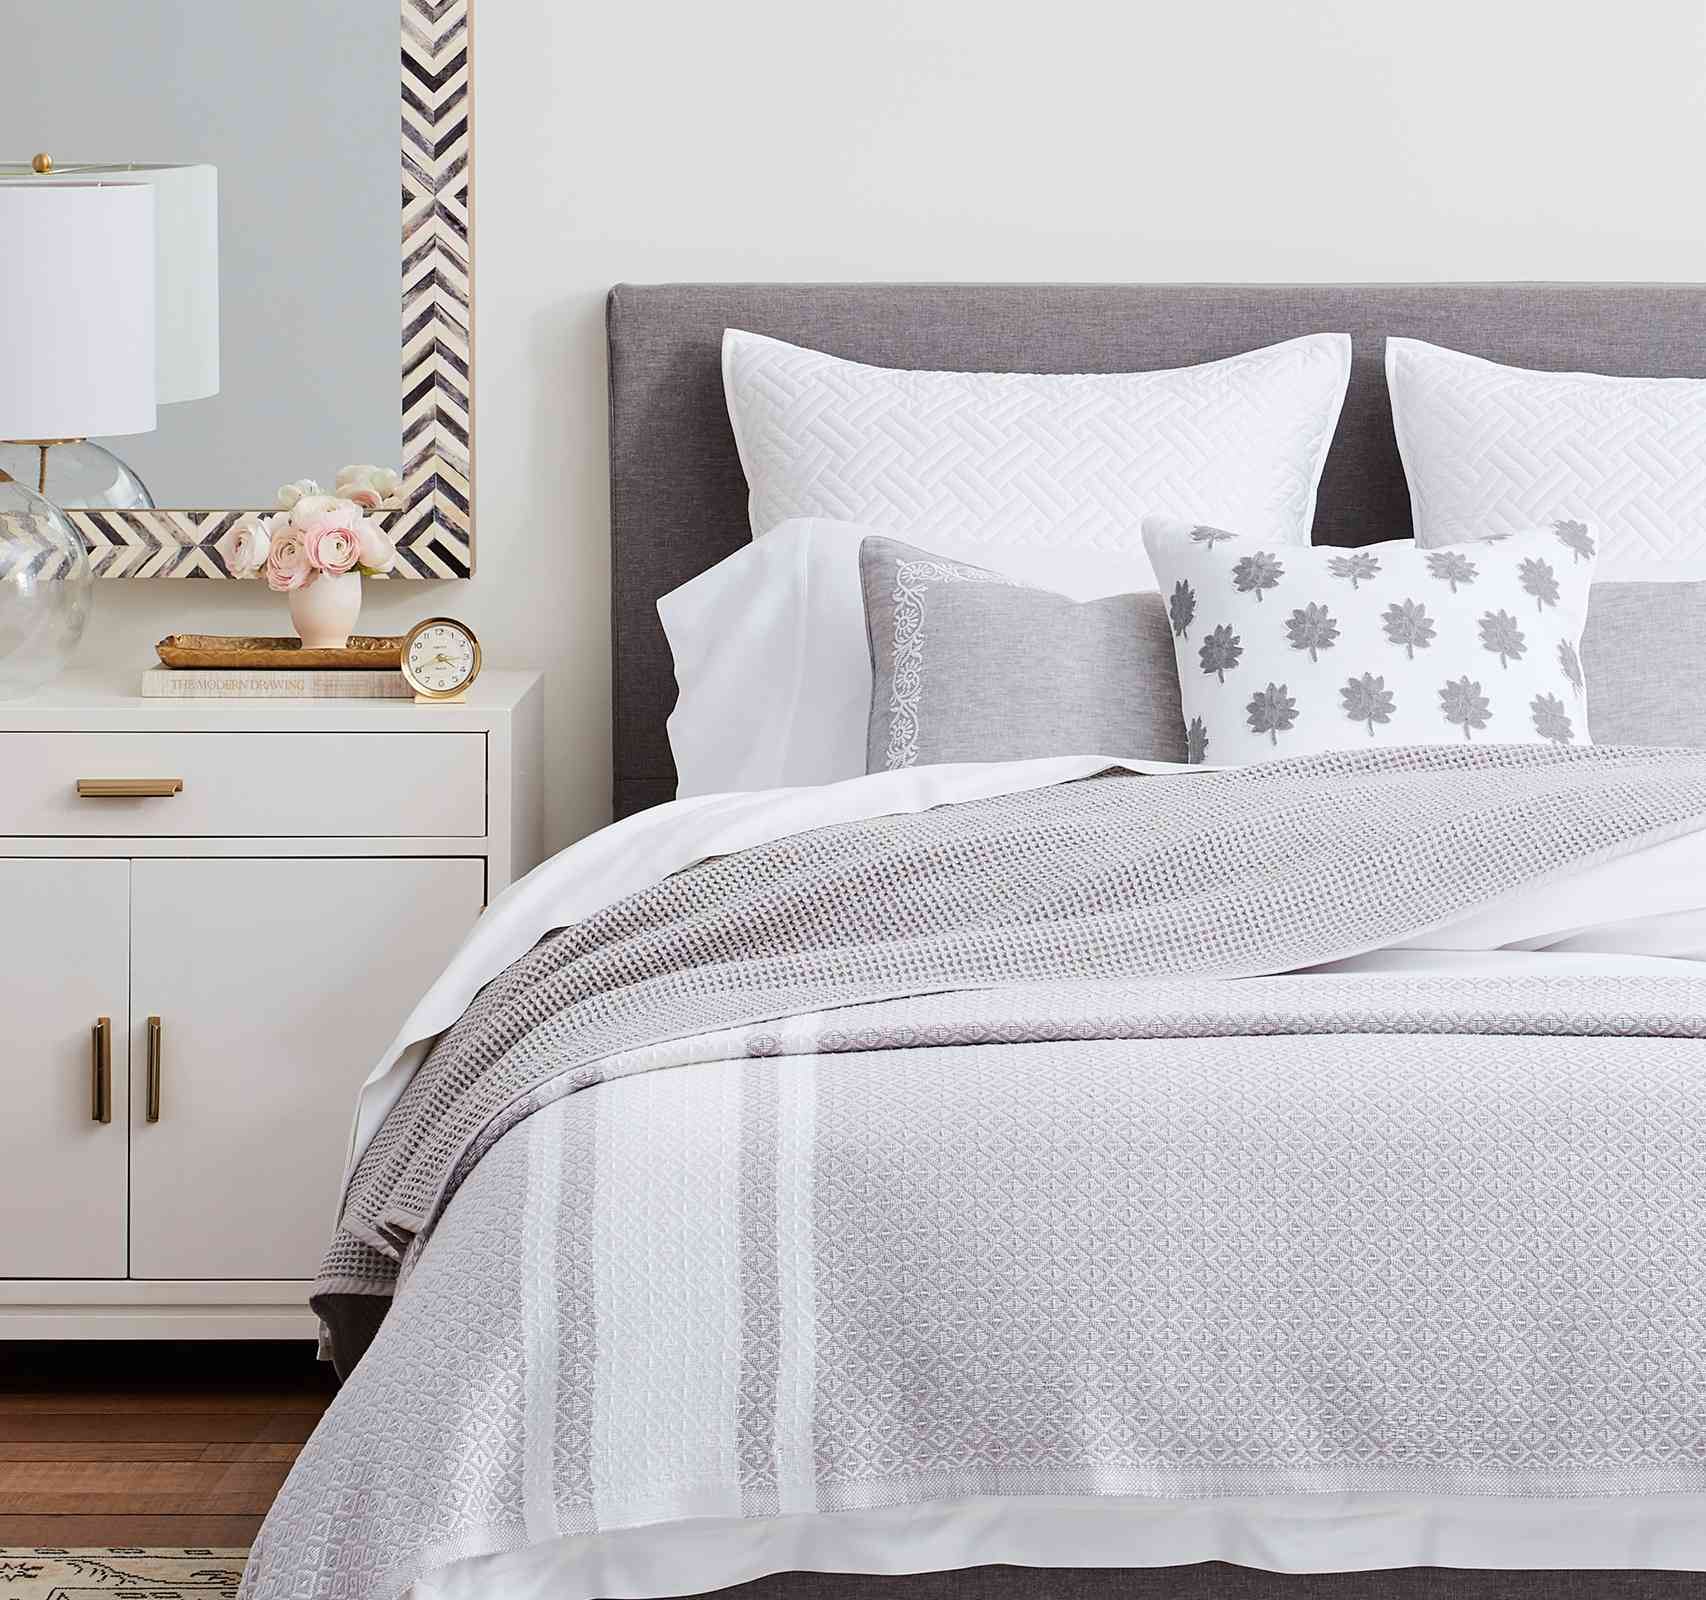 The 12 Best Places To Buy Luxury Bedding In 2021